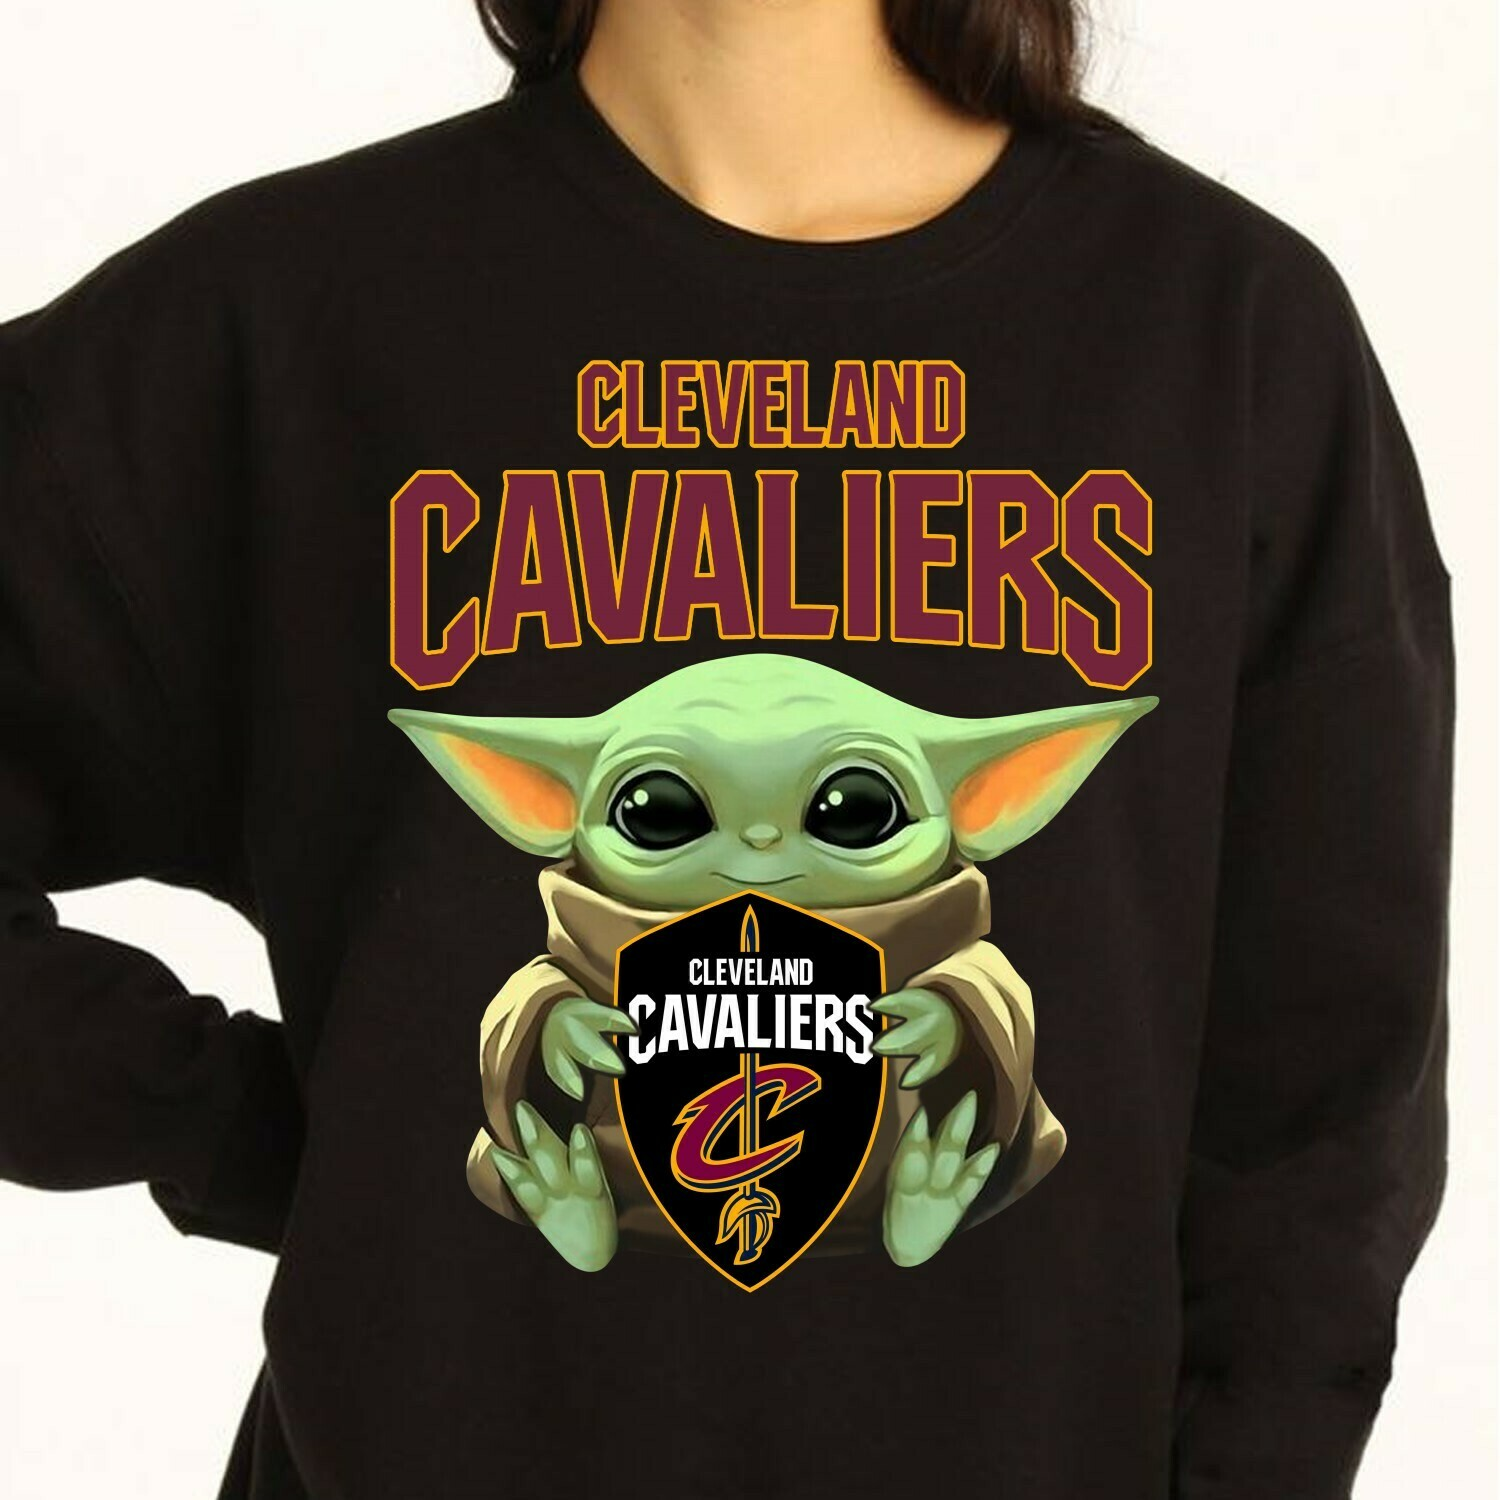 Cleveland Cavaliers Baby Yoda Star Wars The Mandalorian The Child First Memories Floating NBA Basketball Dad Mon Kid Fan Gift T-Shirt Long Sleeve Sweatshirt Hoodie Jolly Family Gifts